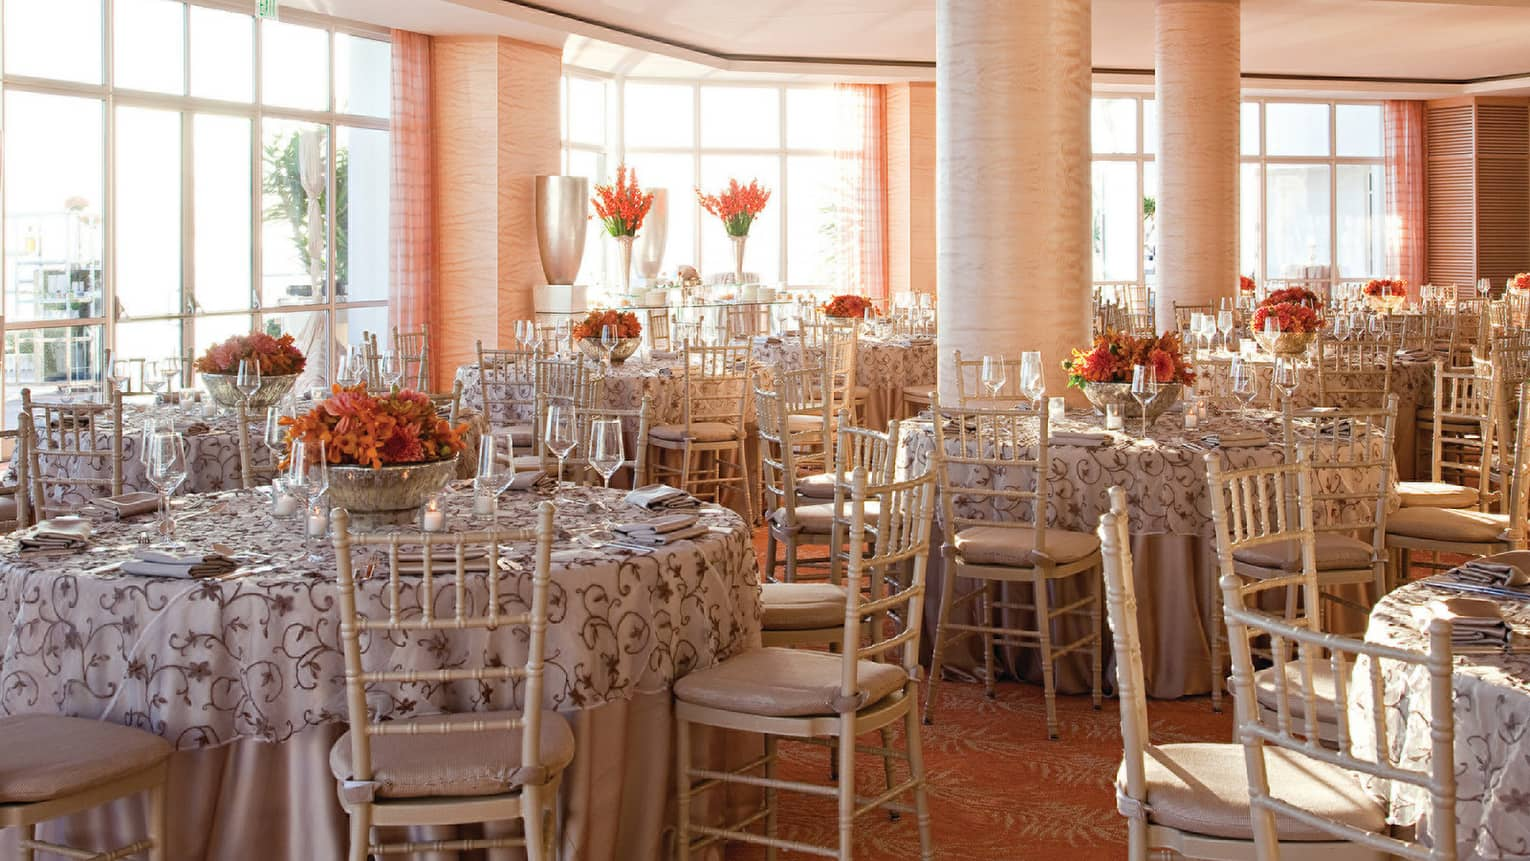 Sunny LaPacifica Ballroom dining tables under pink pillars, sunny floor-to-ceiling windows